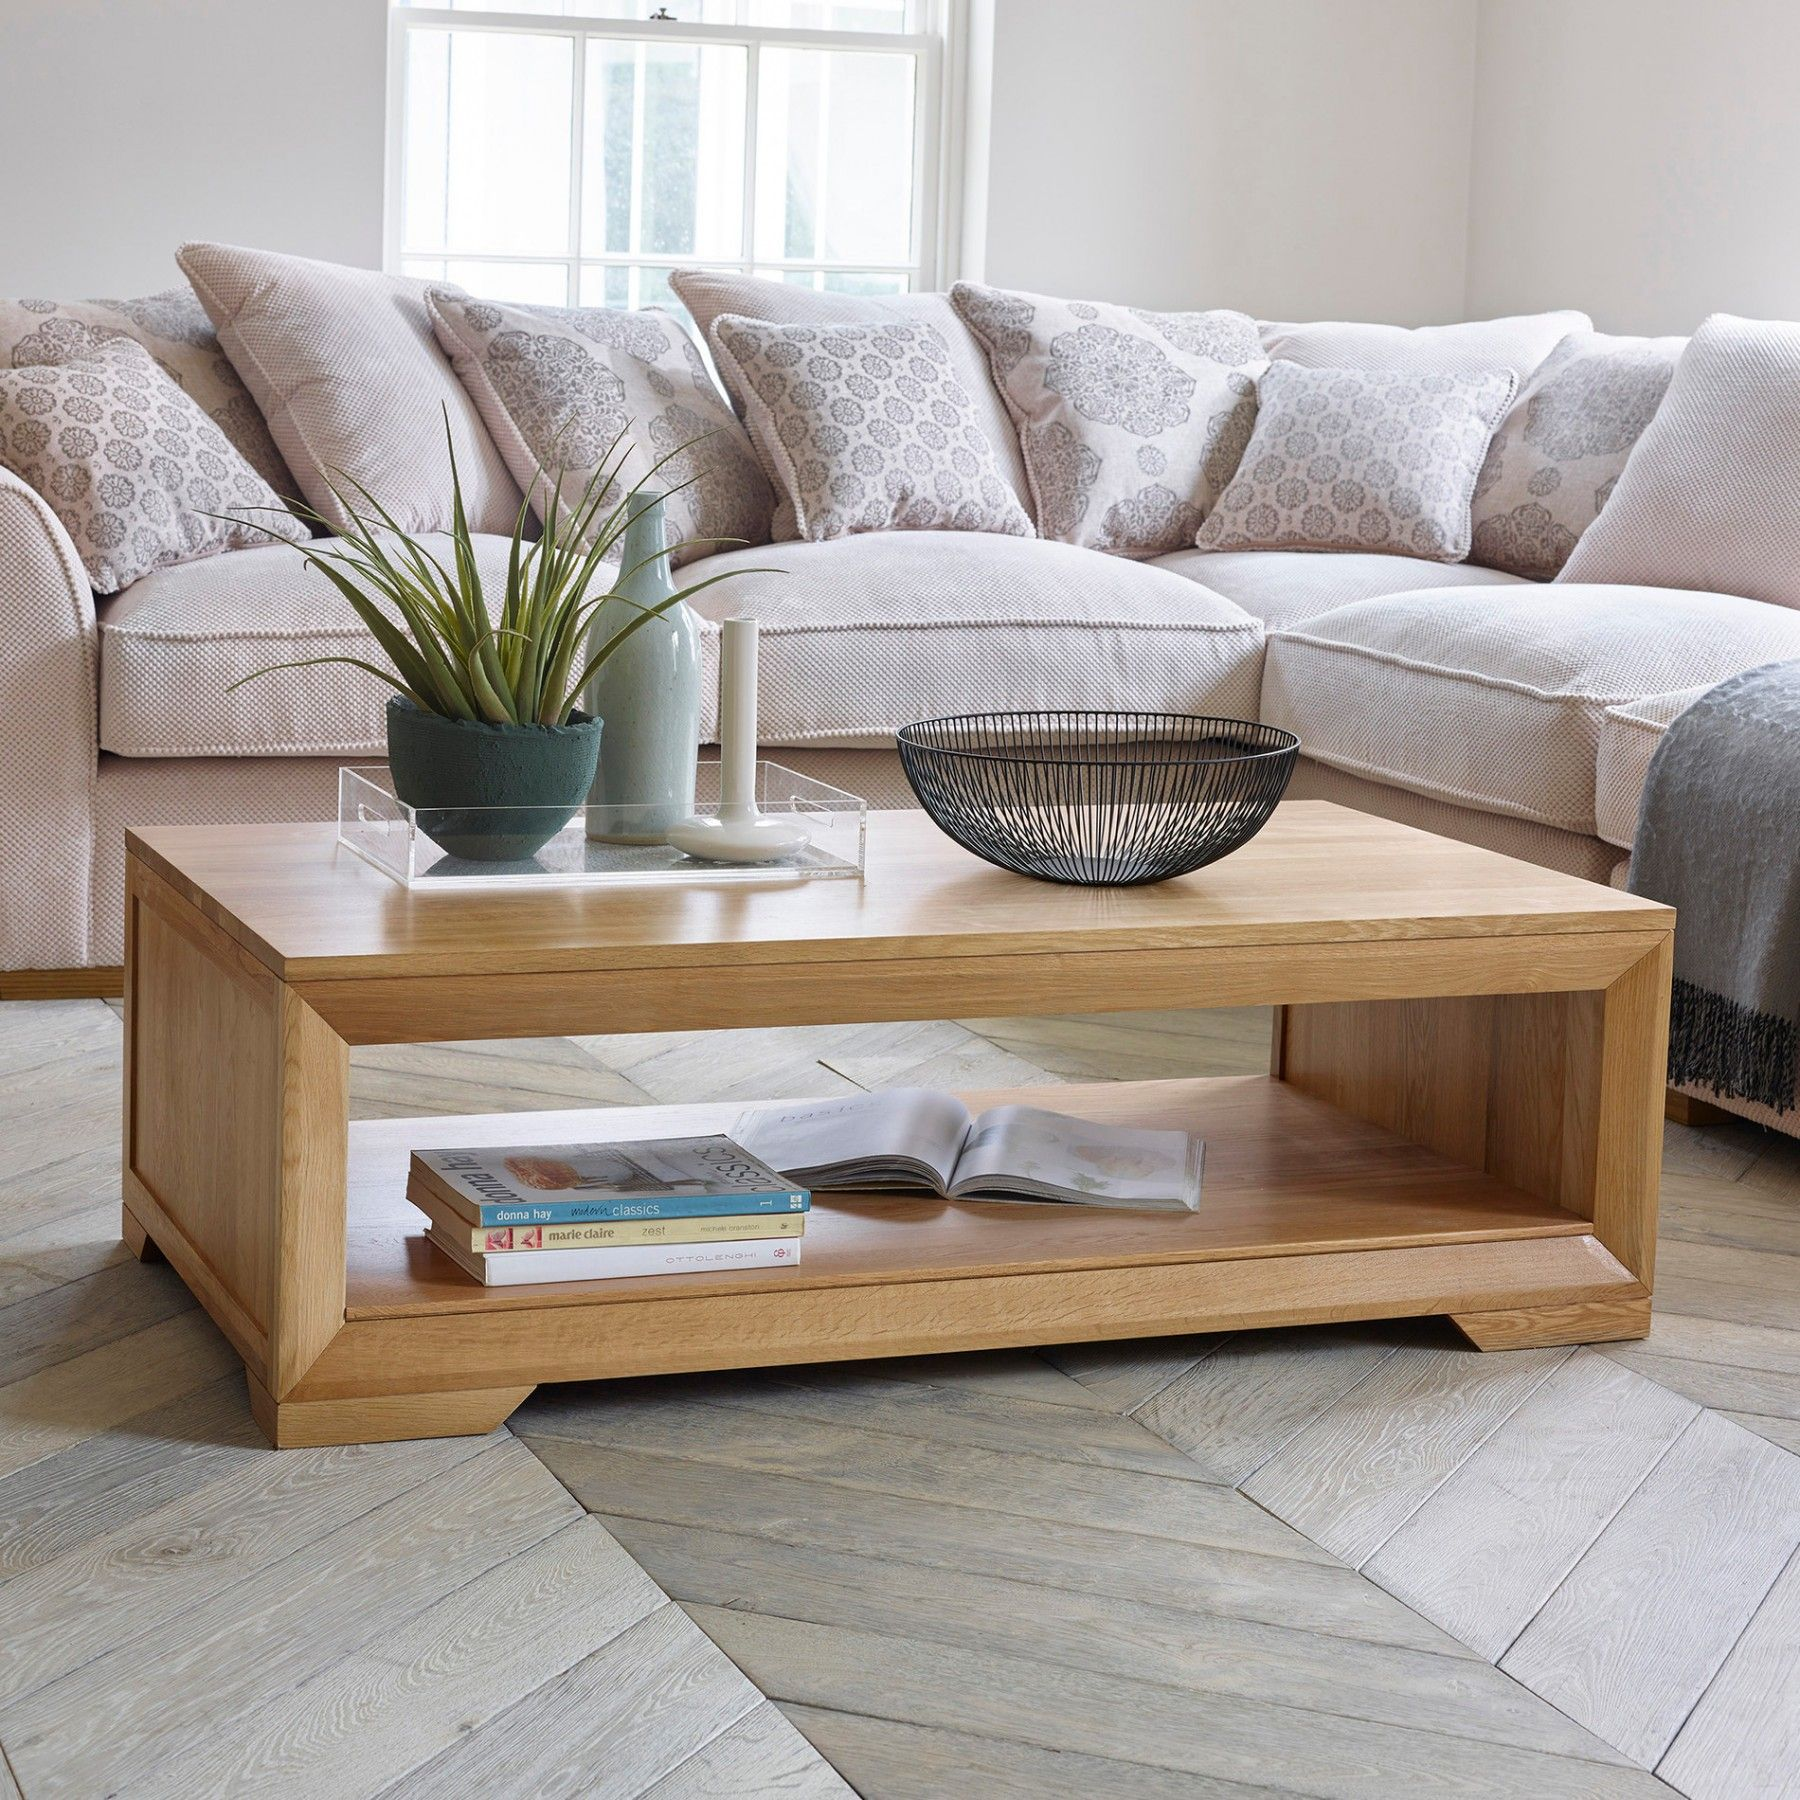 Bevel Solid Oak Coffee Table | Living Room Furniture